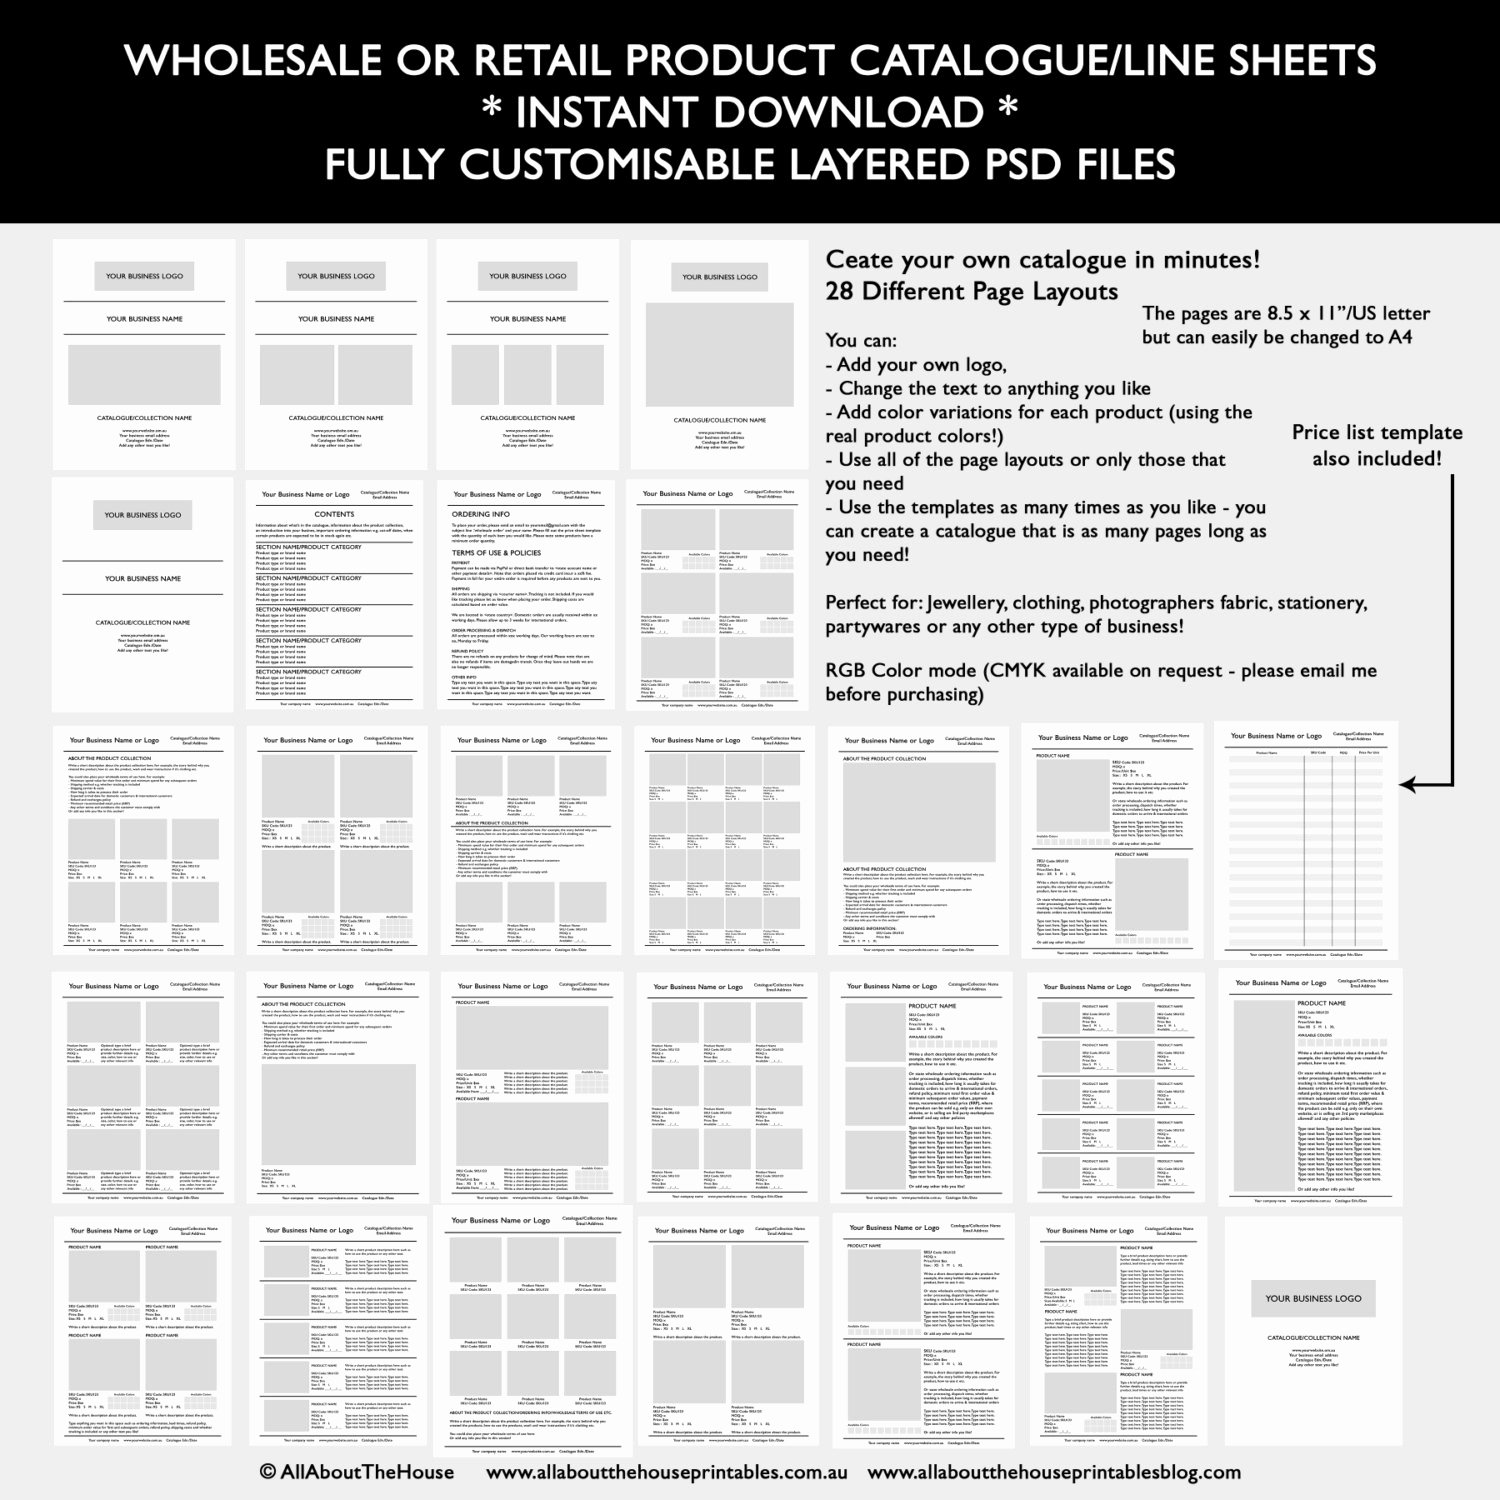 Free Line Sheet Template Inspirational How to Make A Product Catalogue Line Sheet for Your